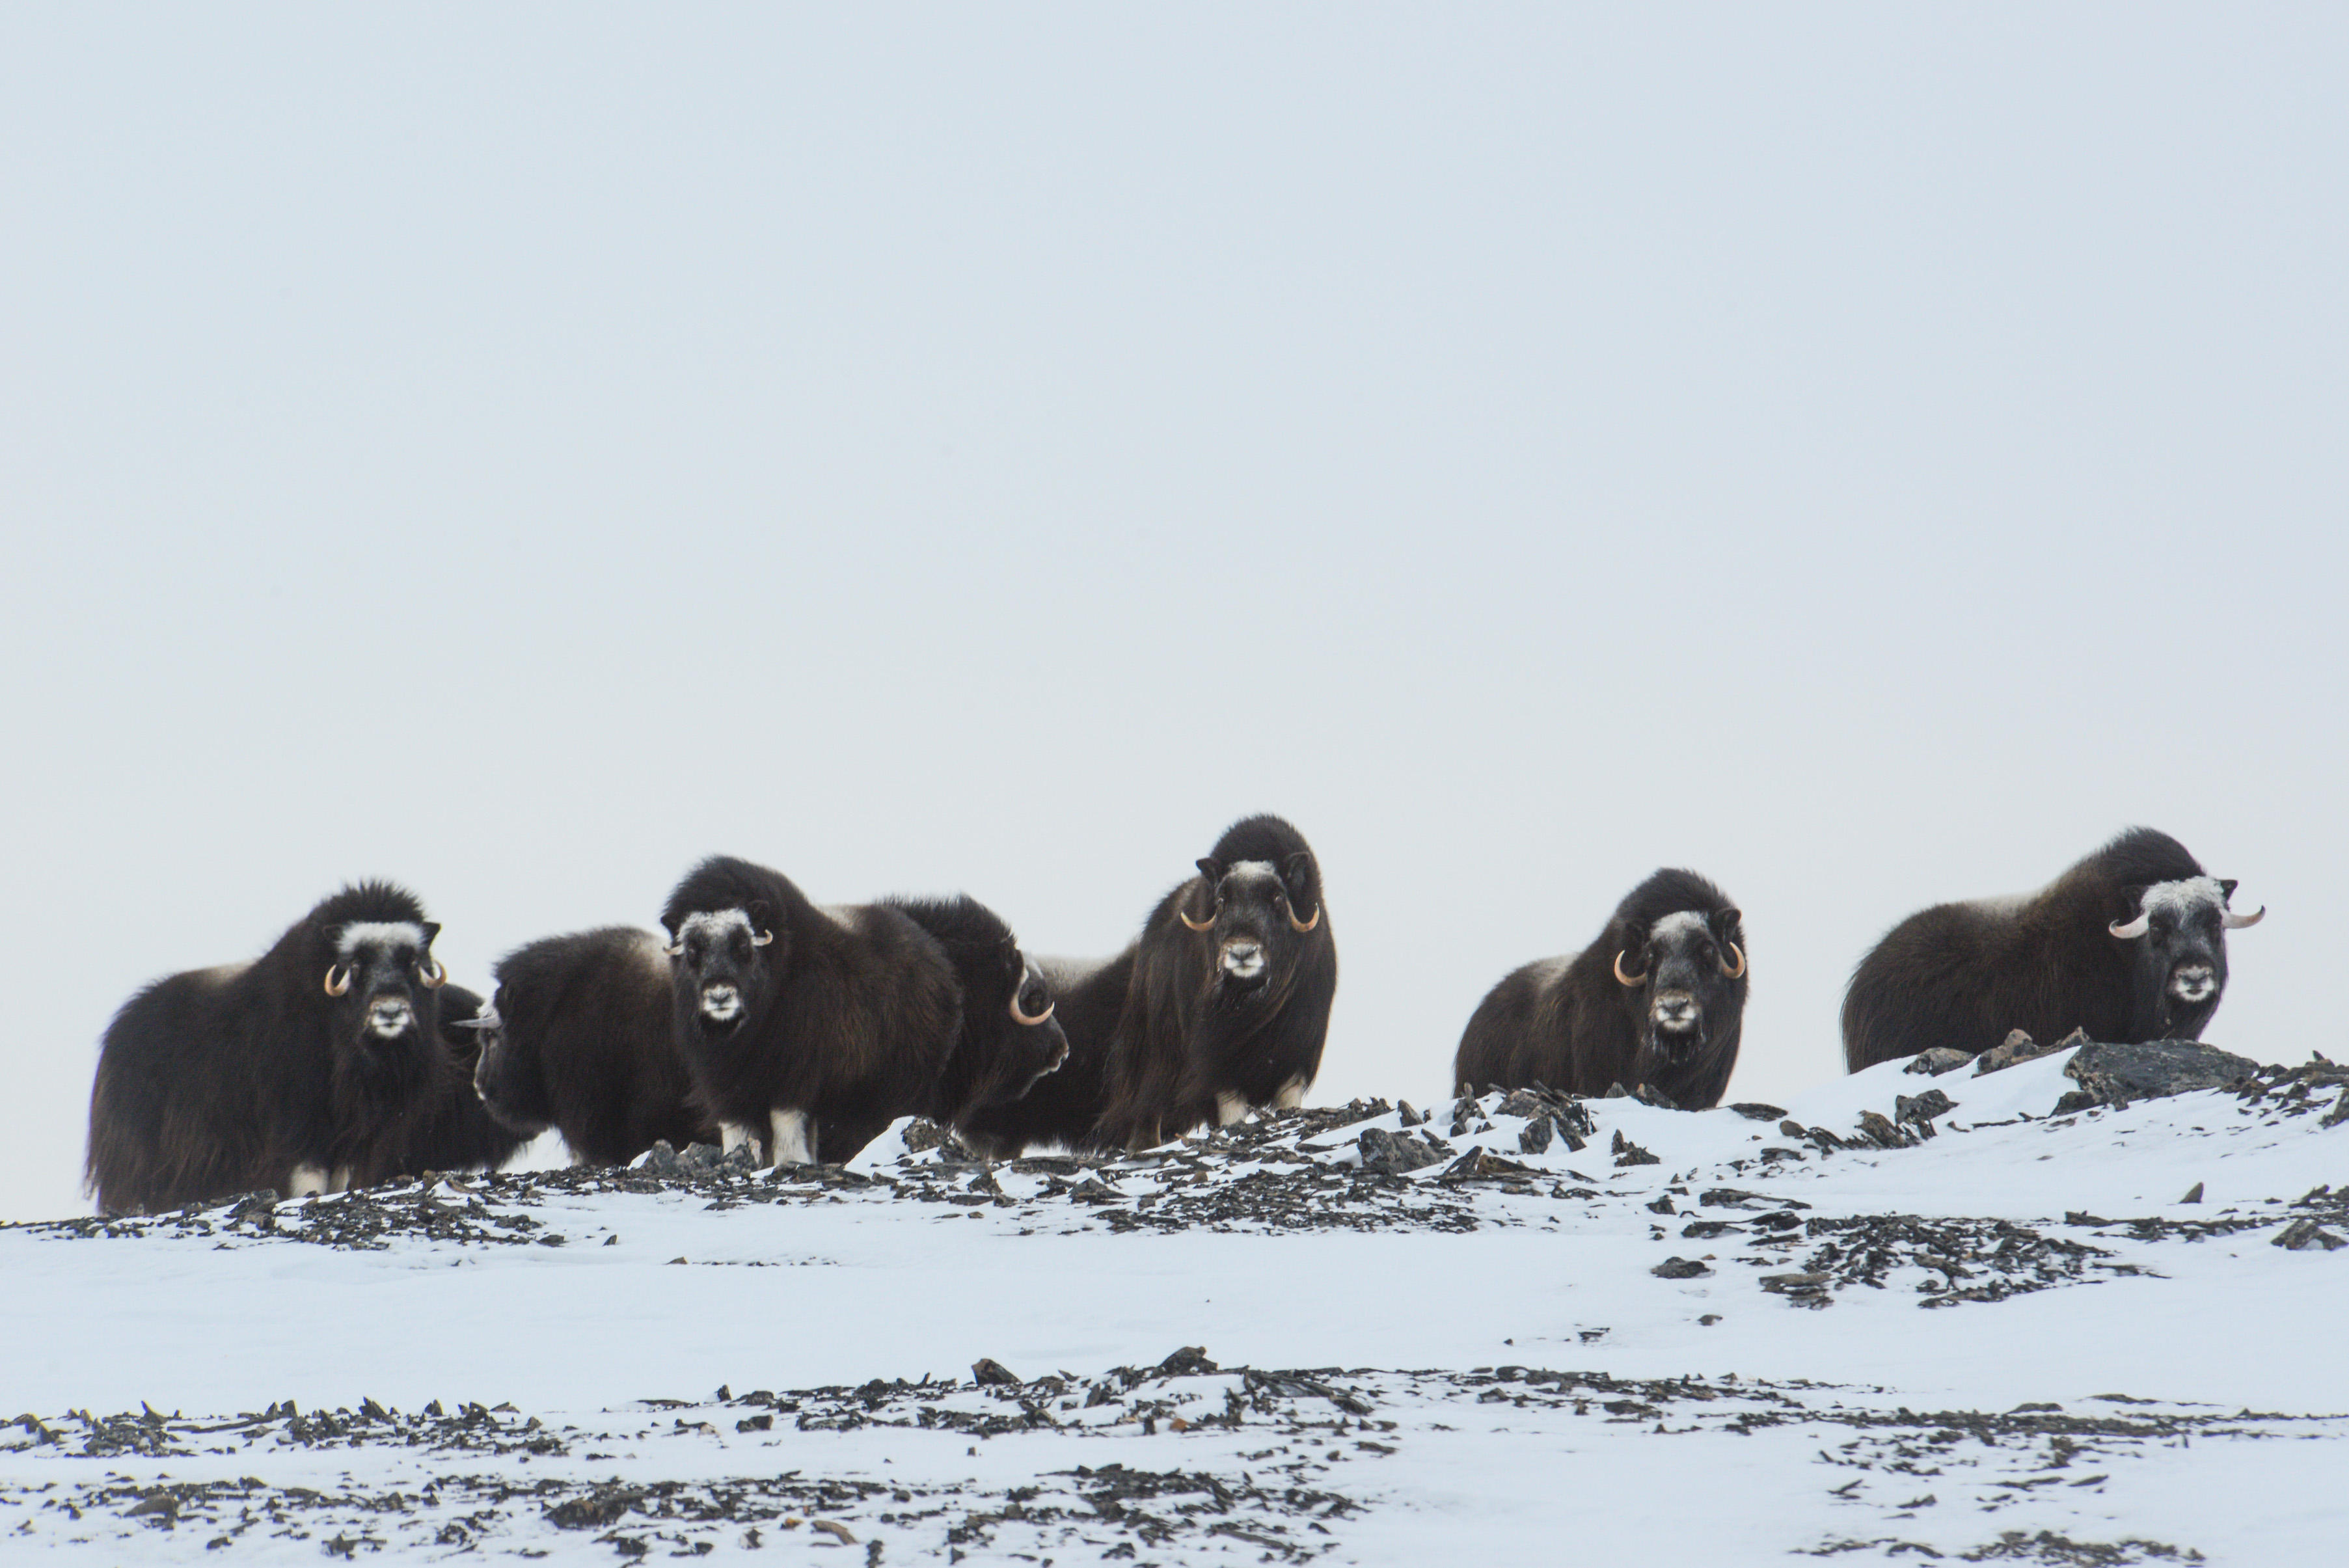 New research has revealed the effects of global warming on the muskoxen, which is the largest land mammal in the Arctic.